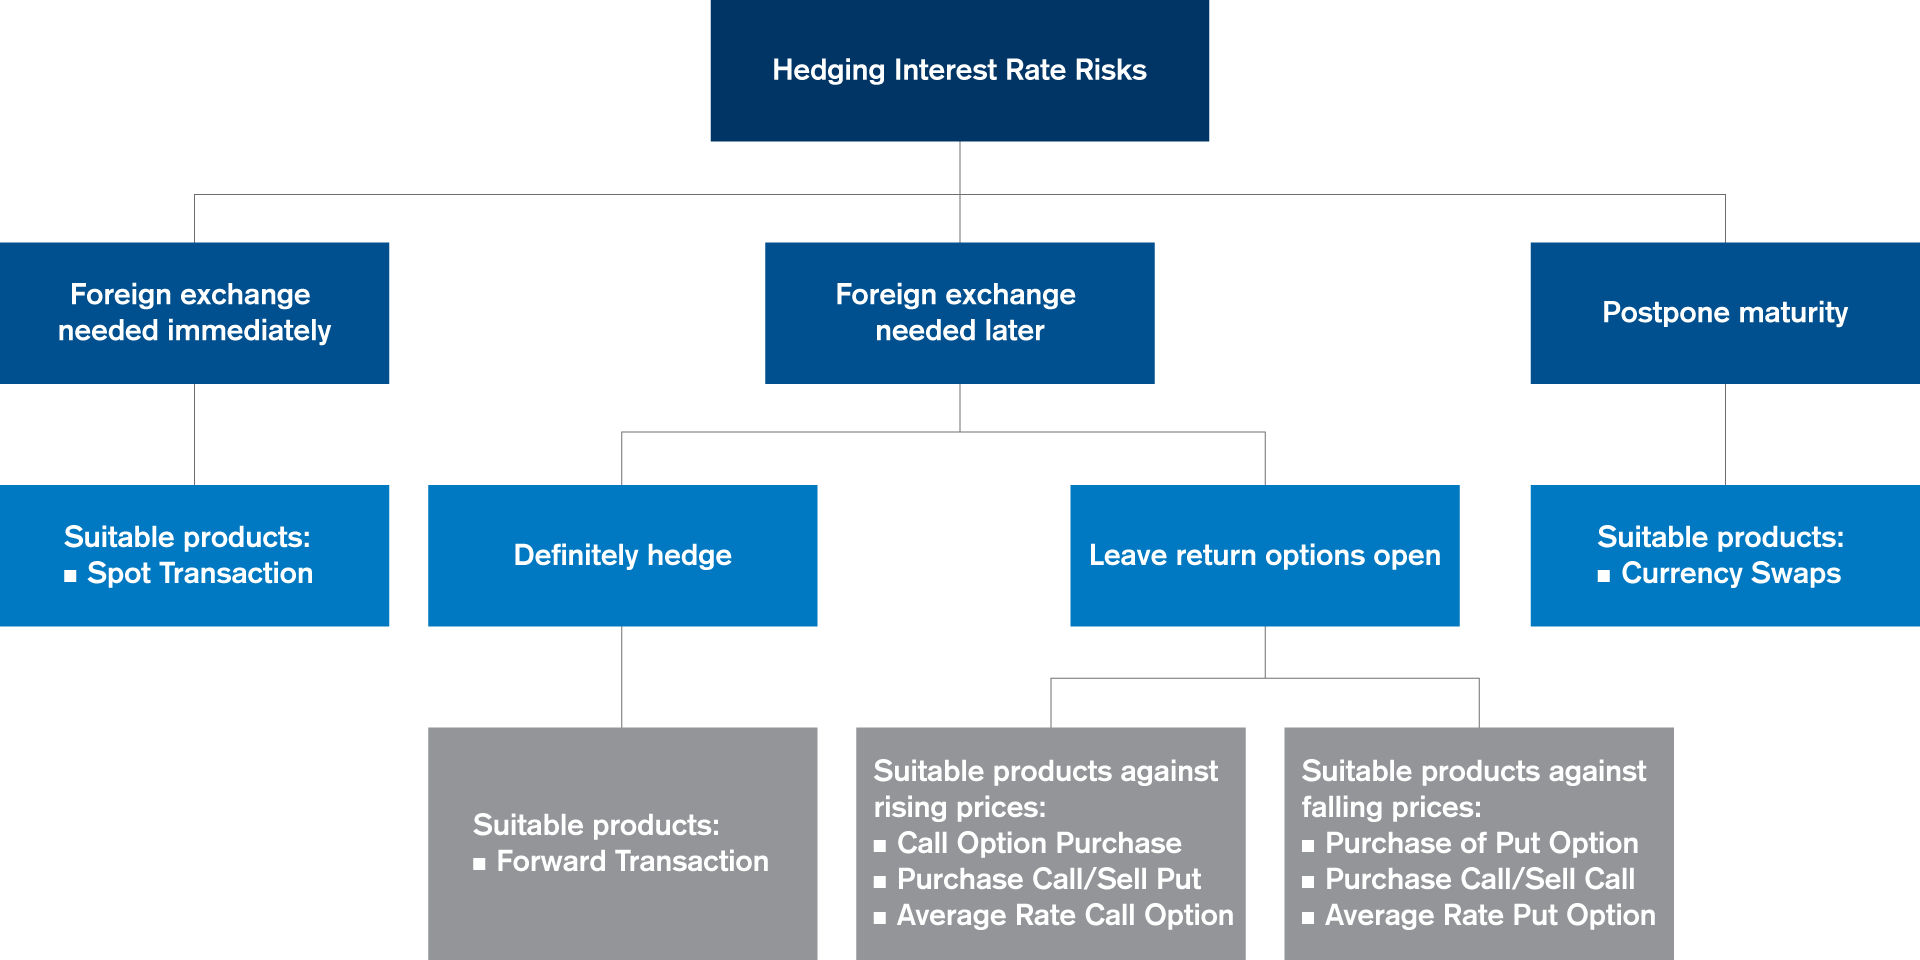 Hedging Interest Rate Risks